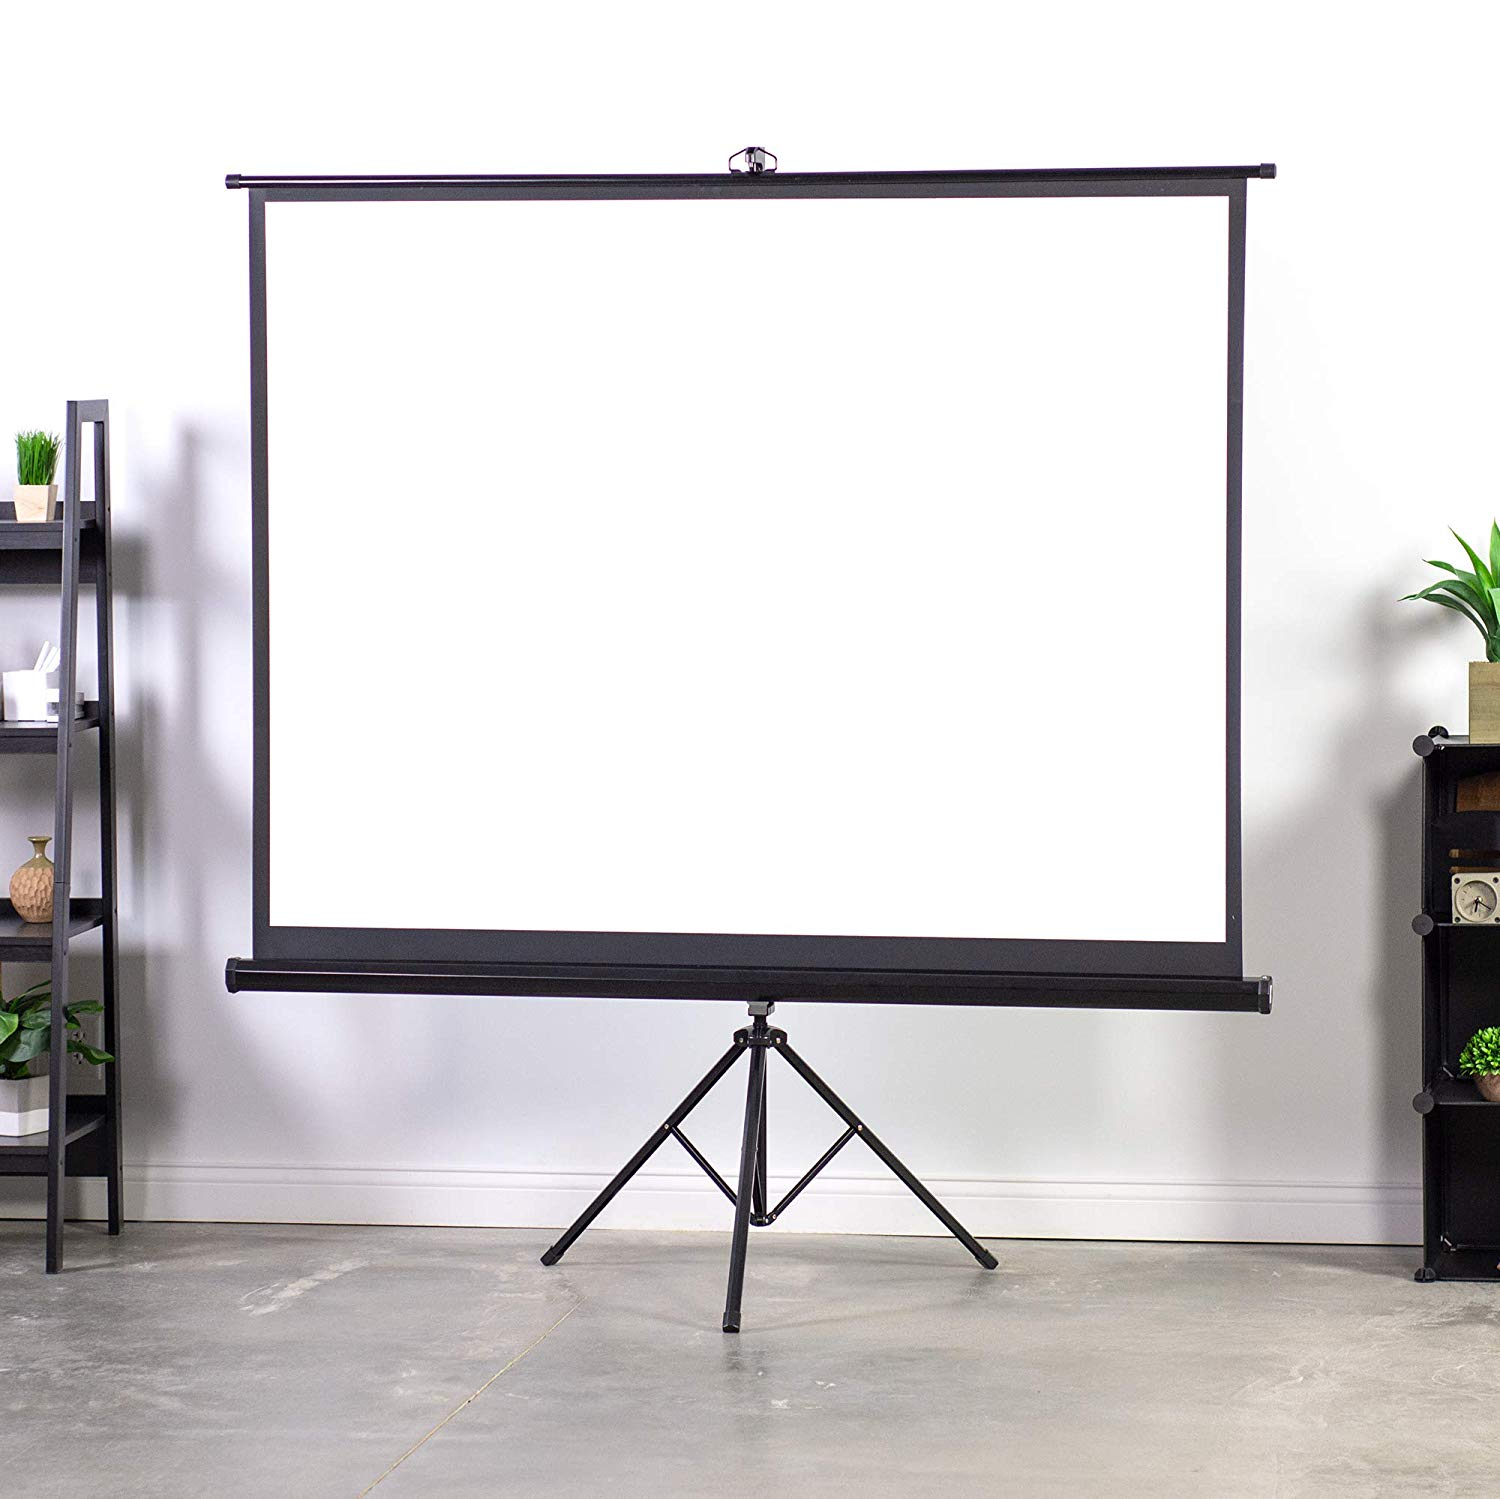 "80"" wide x 60"" tall collapsible"